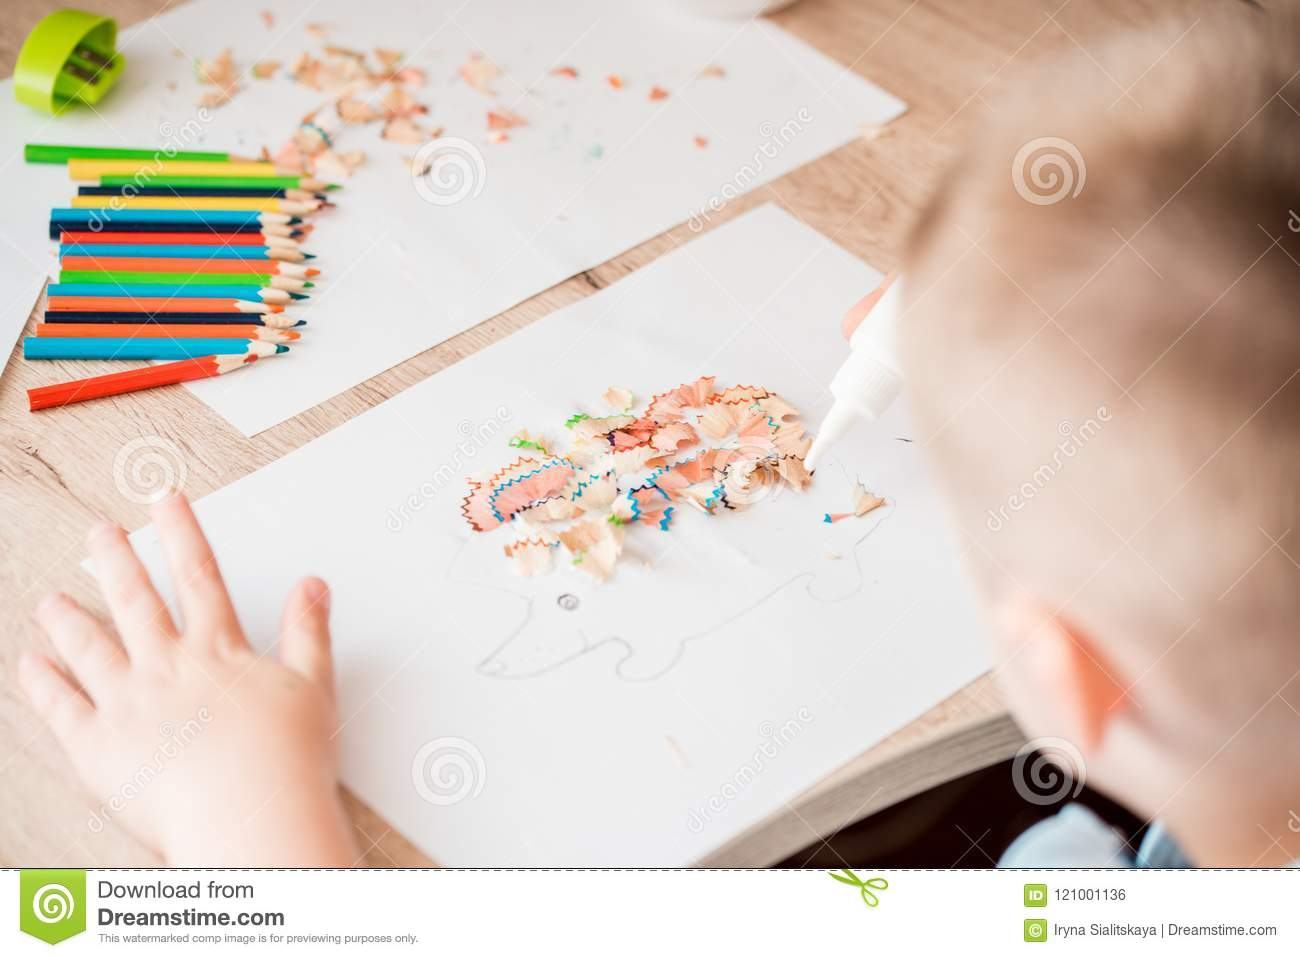 Cute little girl make applique glues colorful house, applying color paper using glue while doing arts and crafts in preschool or h